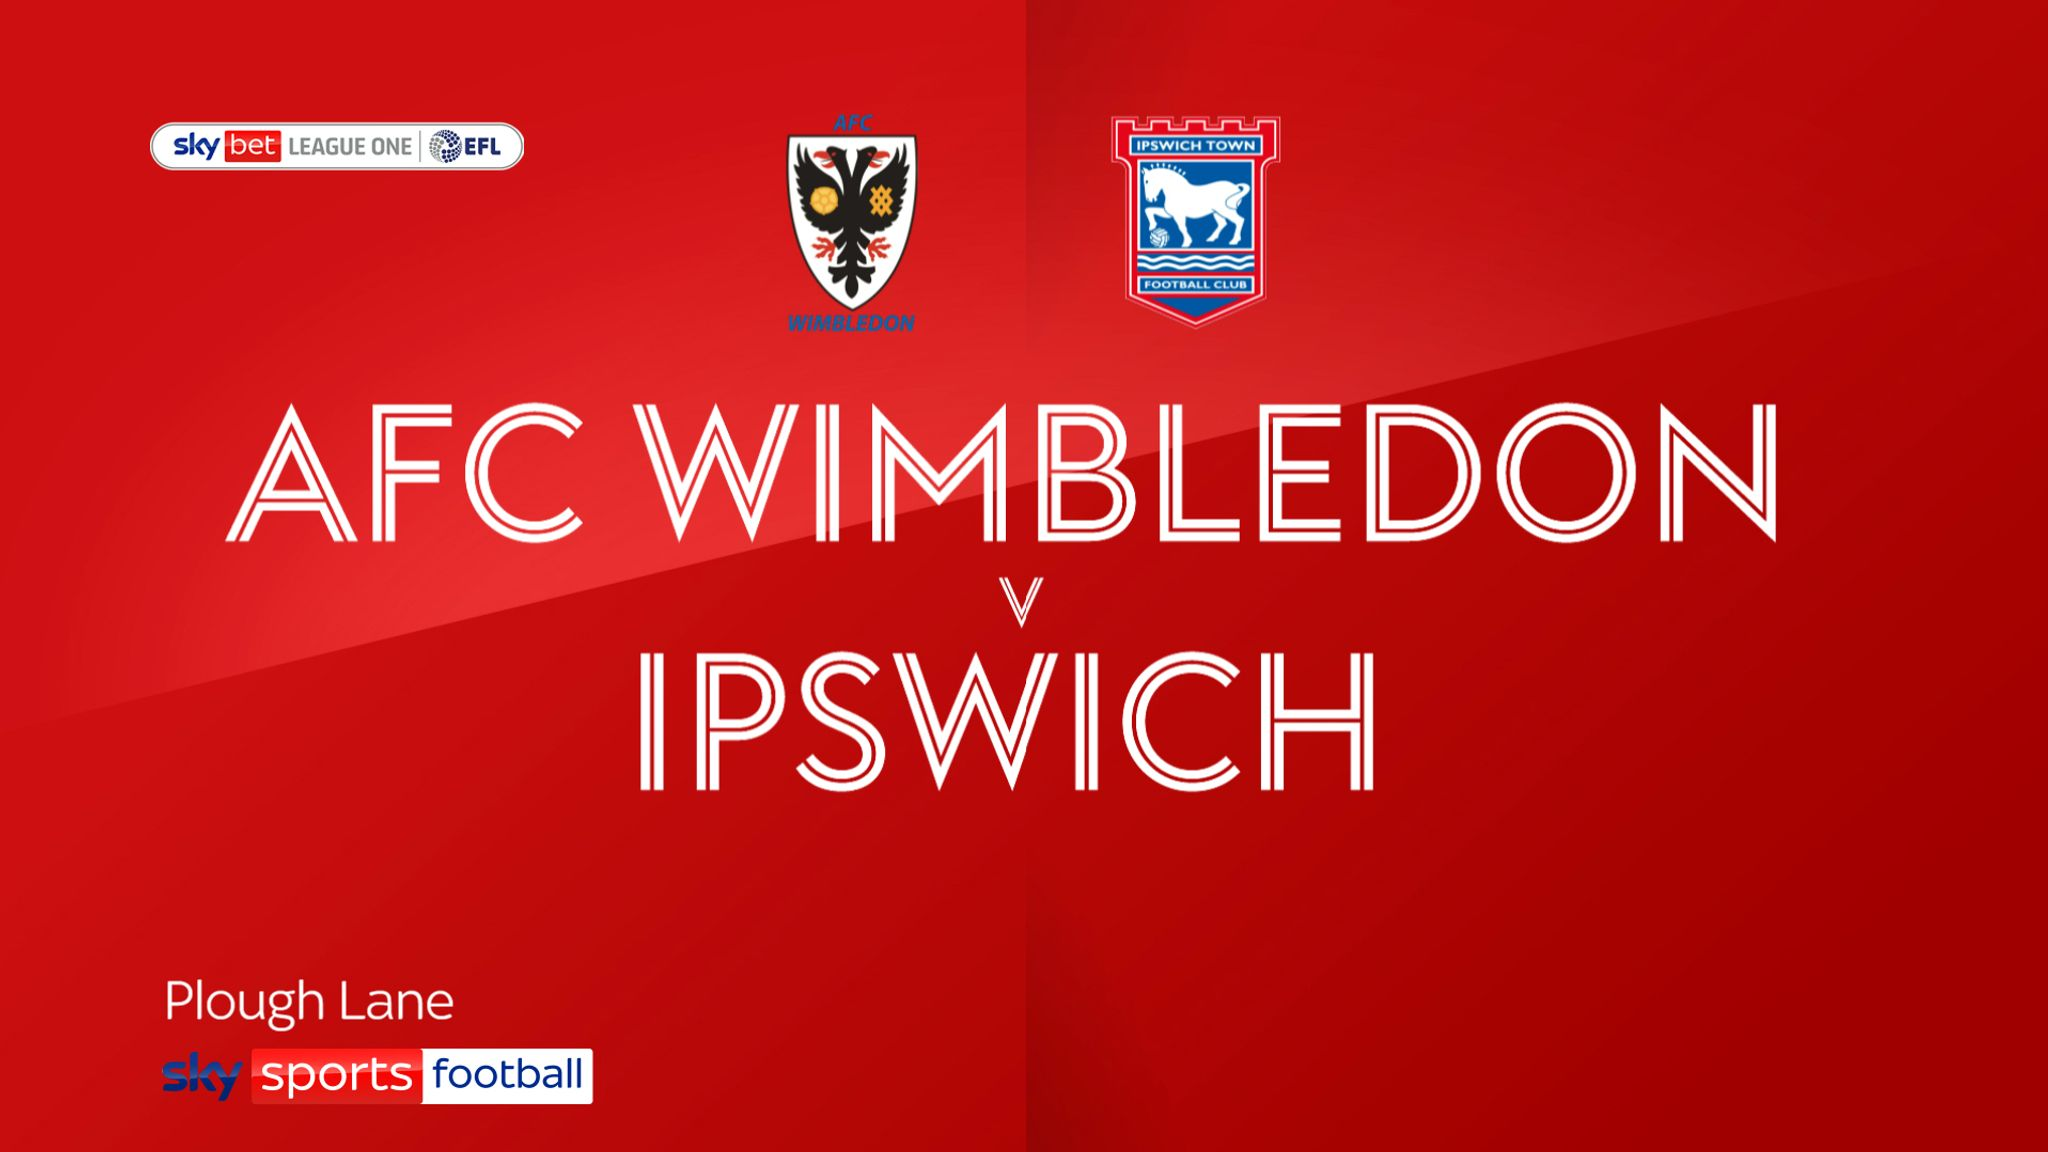 AFC Wimbledon 3-0 Ipswich: Dons beat 10-man Tractor Boys to boost survival hopes